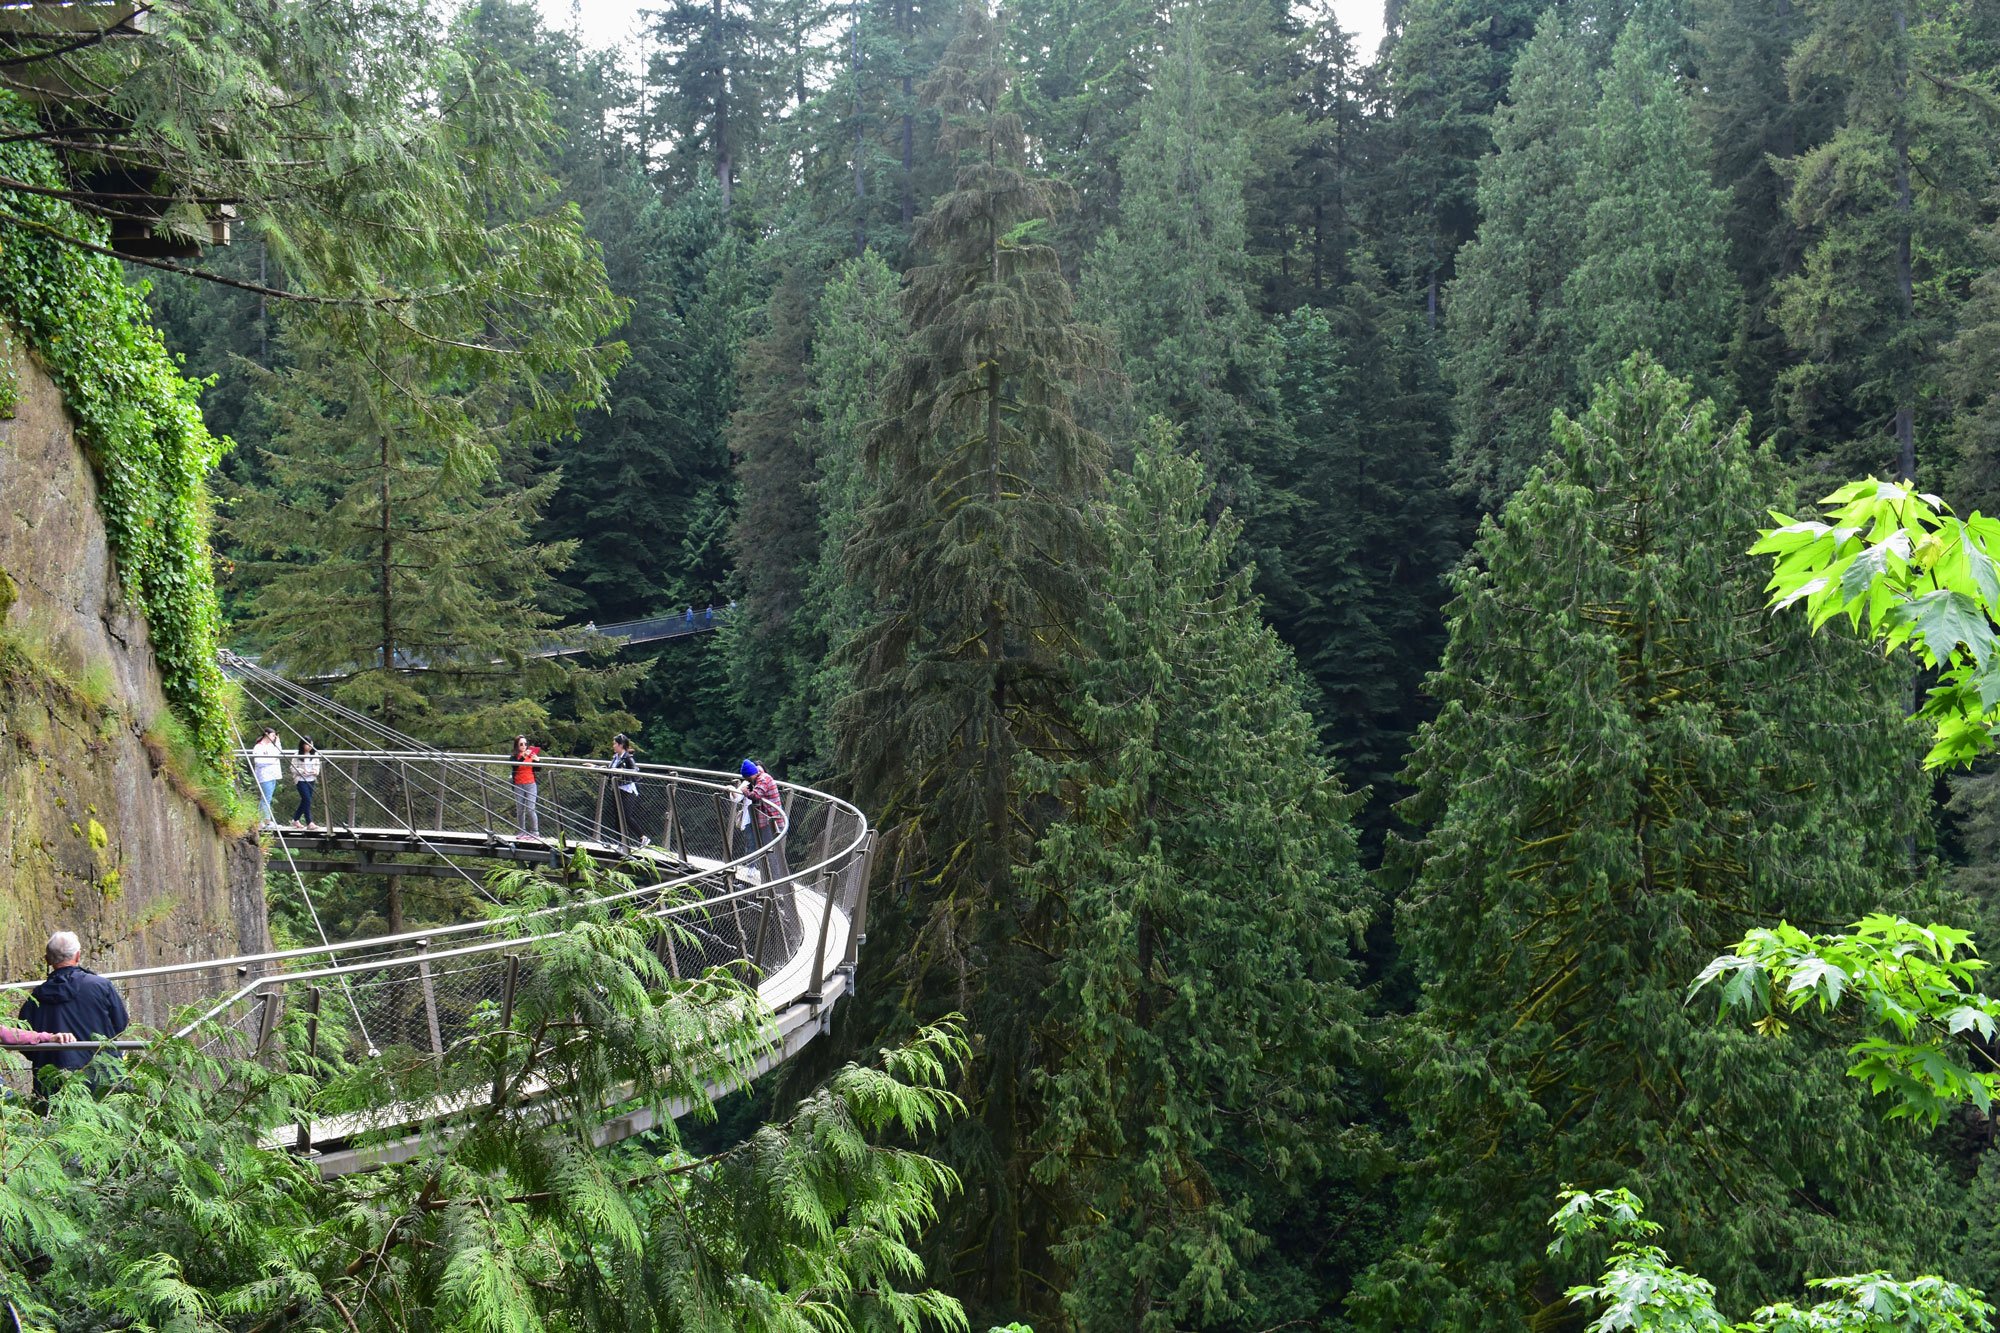 Capilano Suspension Bridge Park, Vancouver, BC. Canadá Foto: Virginia Falanghe